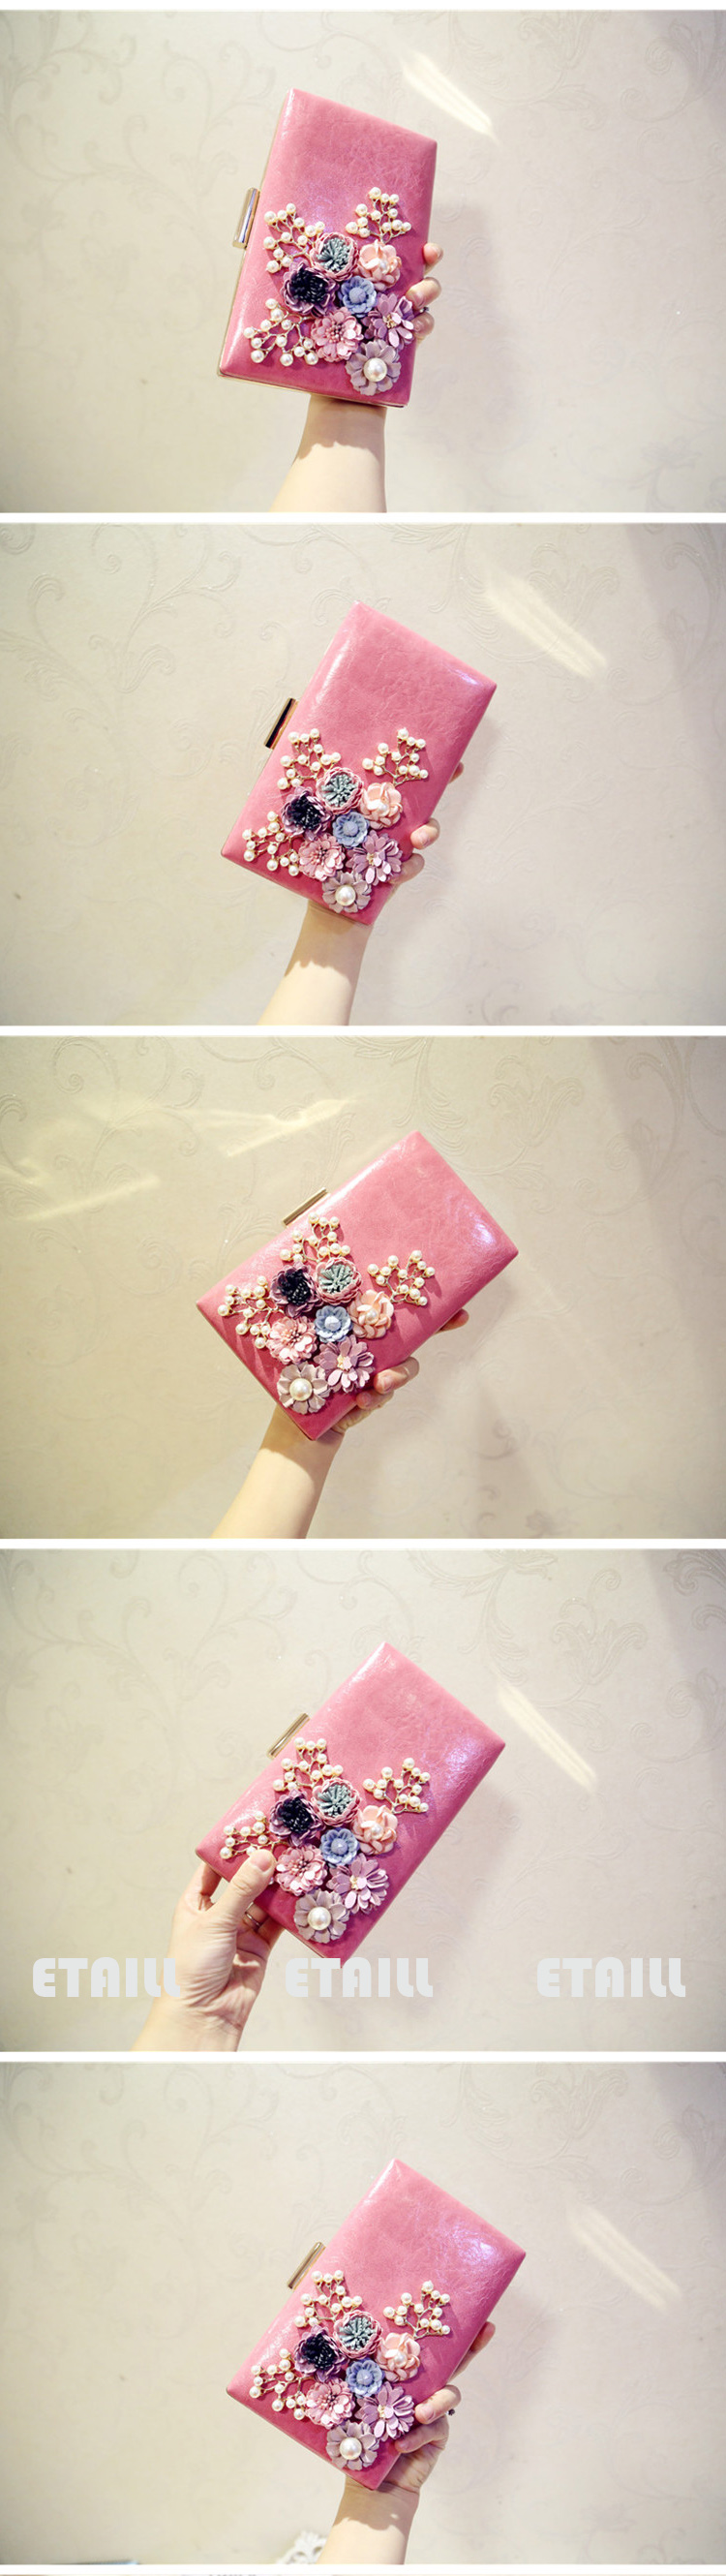 Flower Evening Bags Female Floral Beaded Clutch Bag